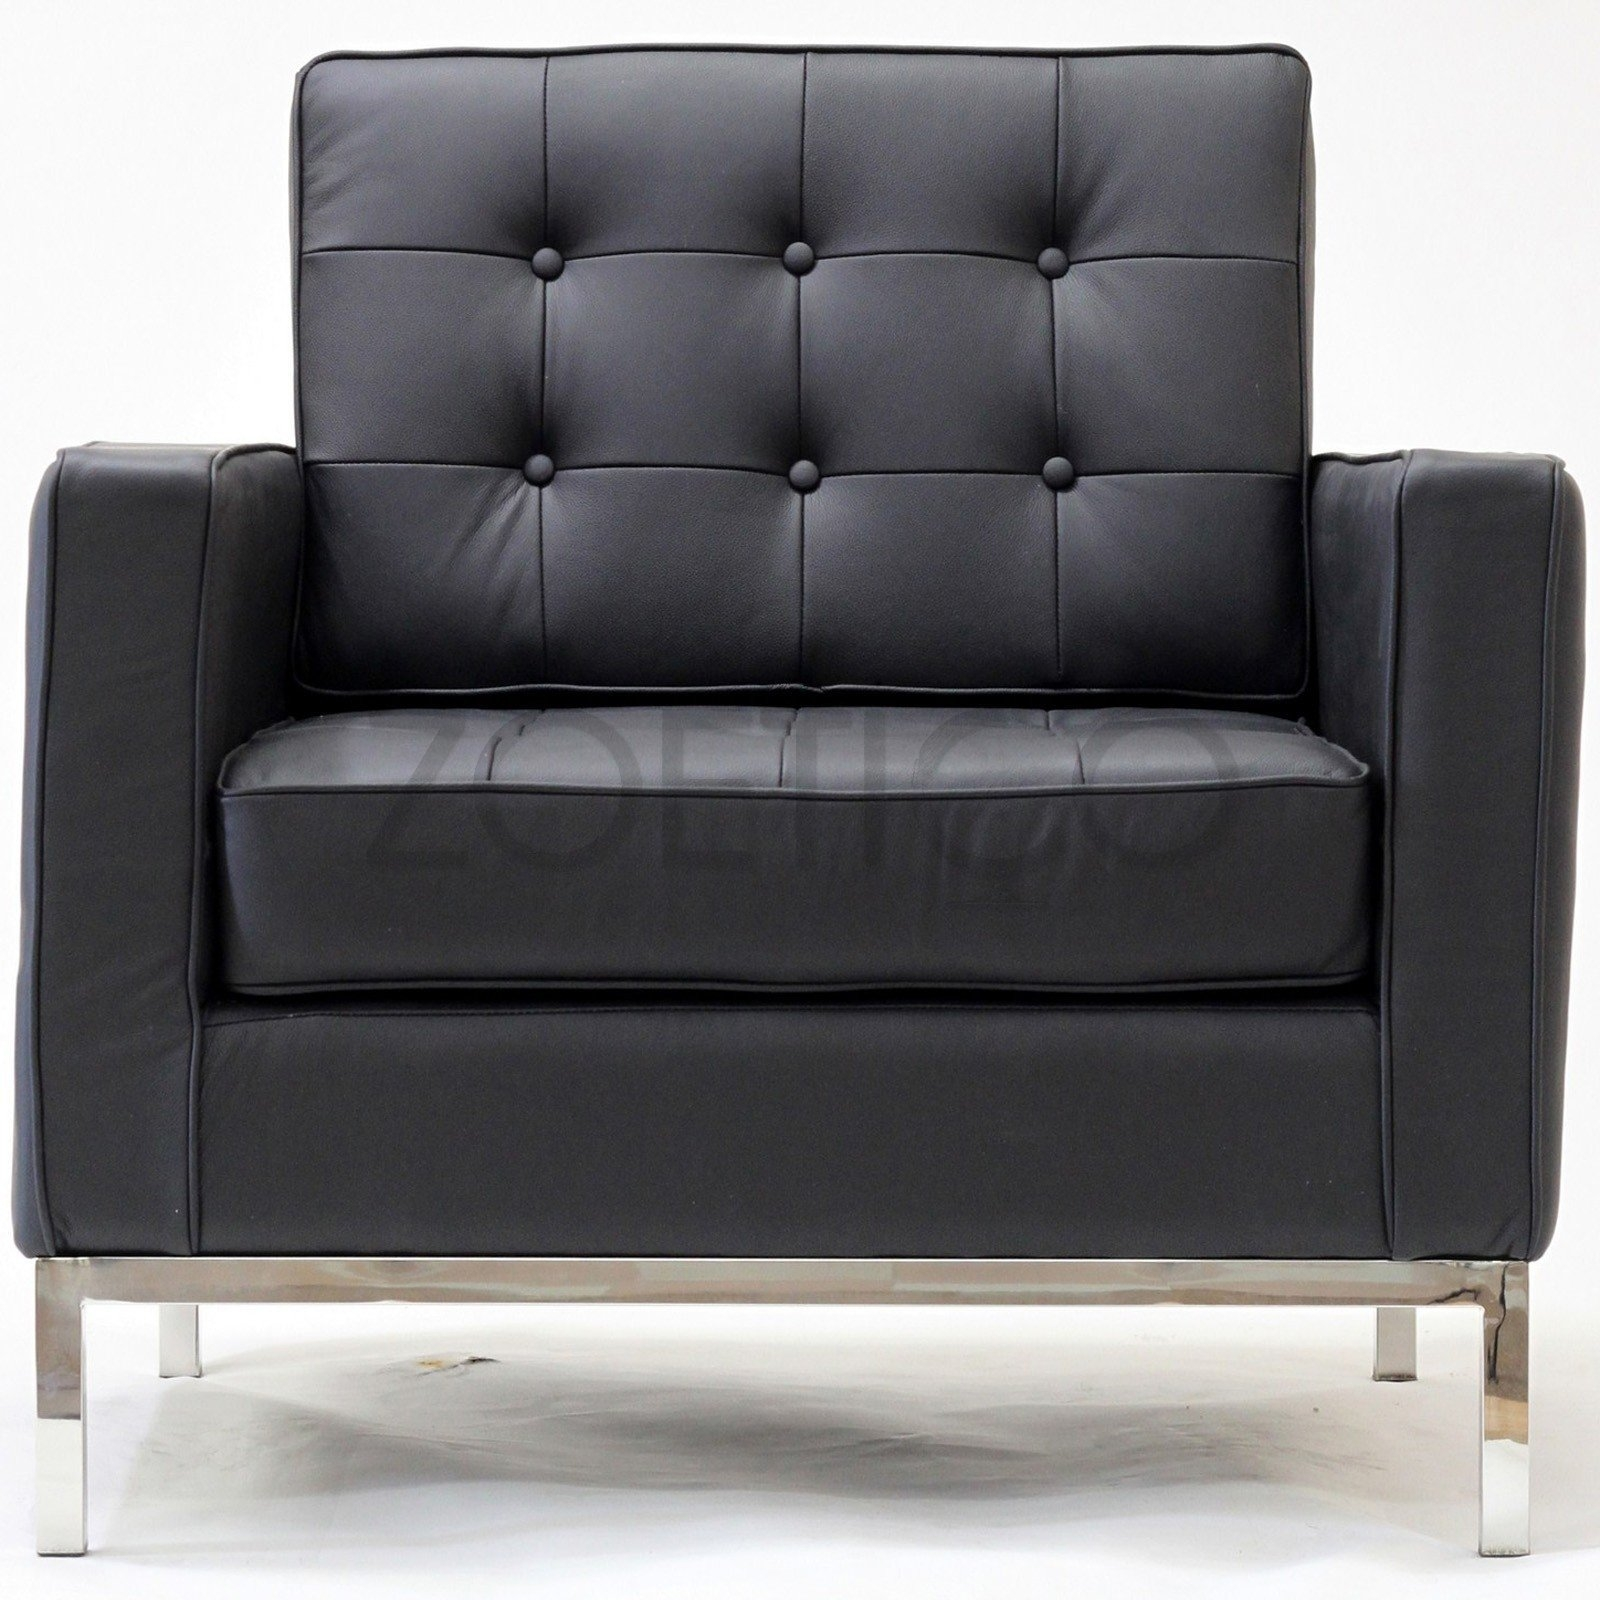 Florence Knoll Style Armchair In Leather Multiple Colors Inside Florence Knoll Style Sofas (Photo 7 of 15)